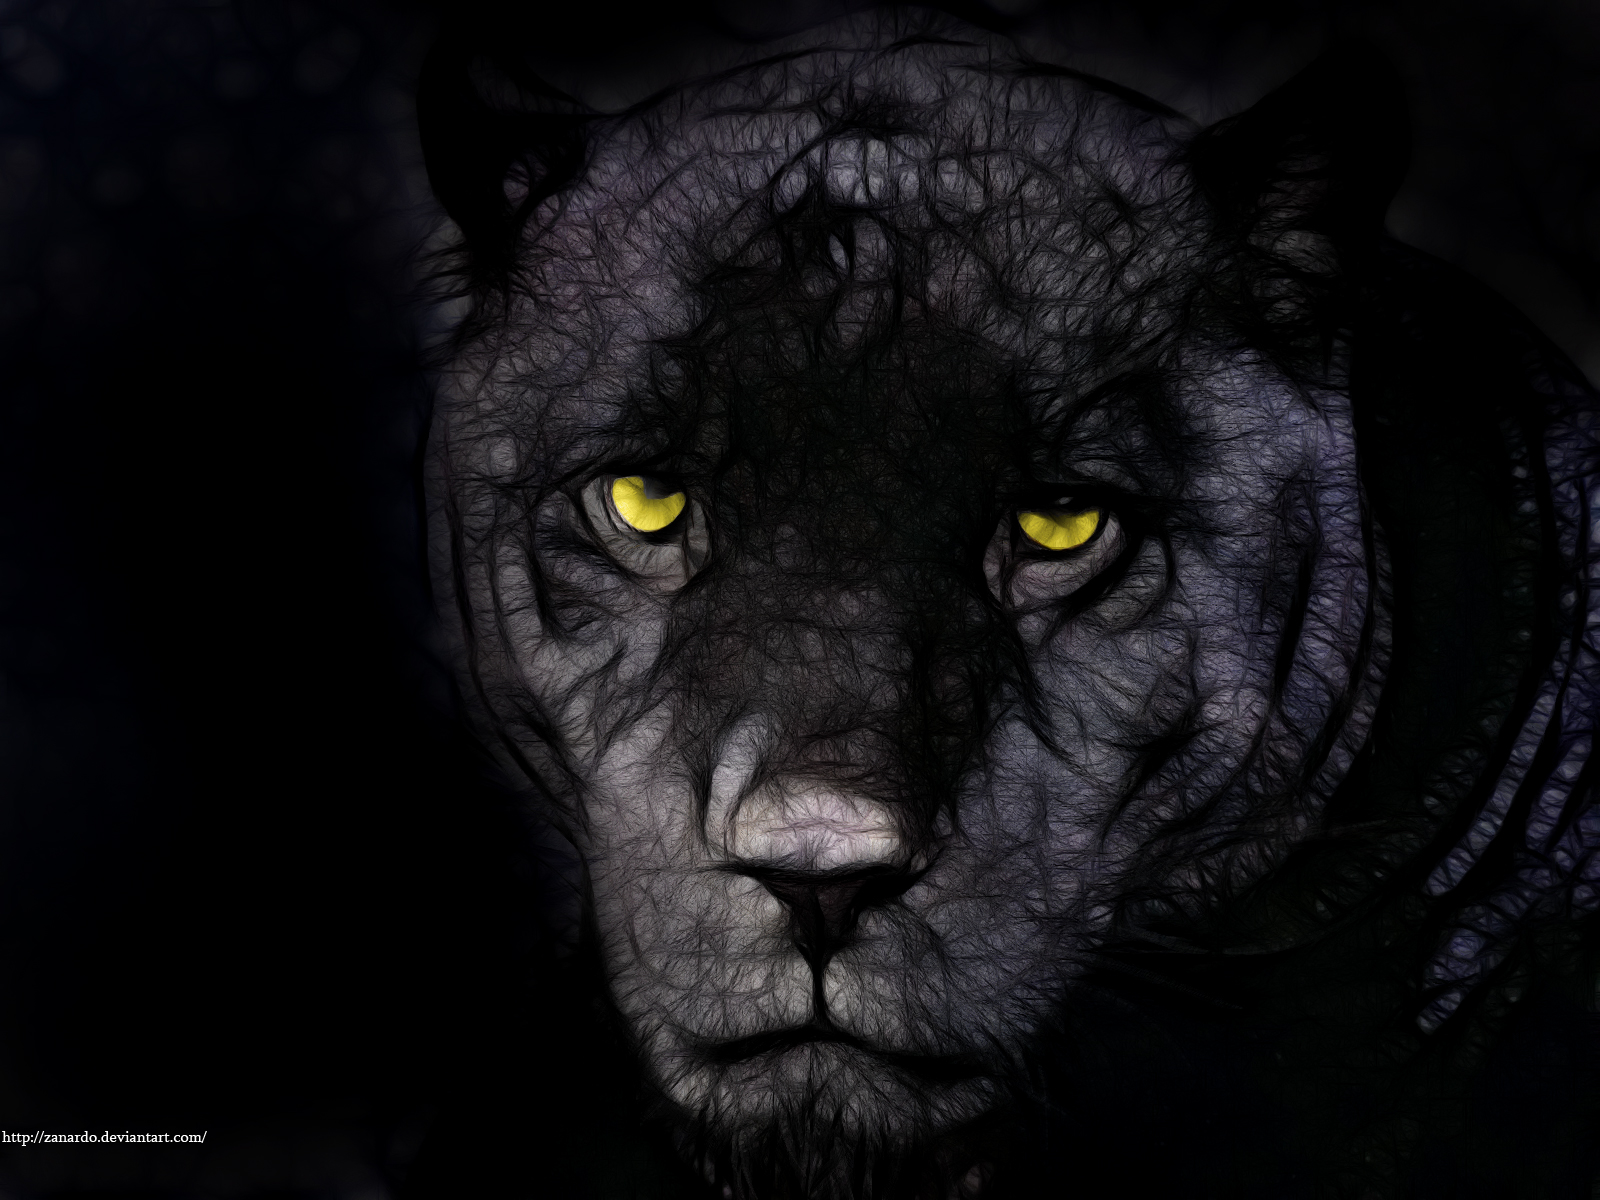 thepanther